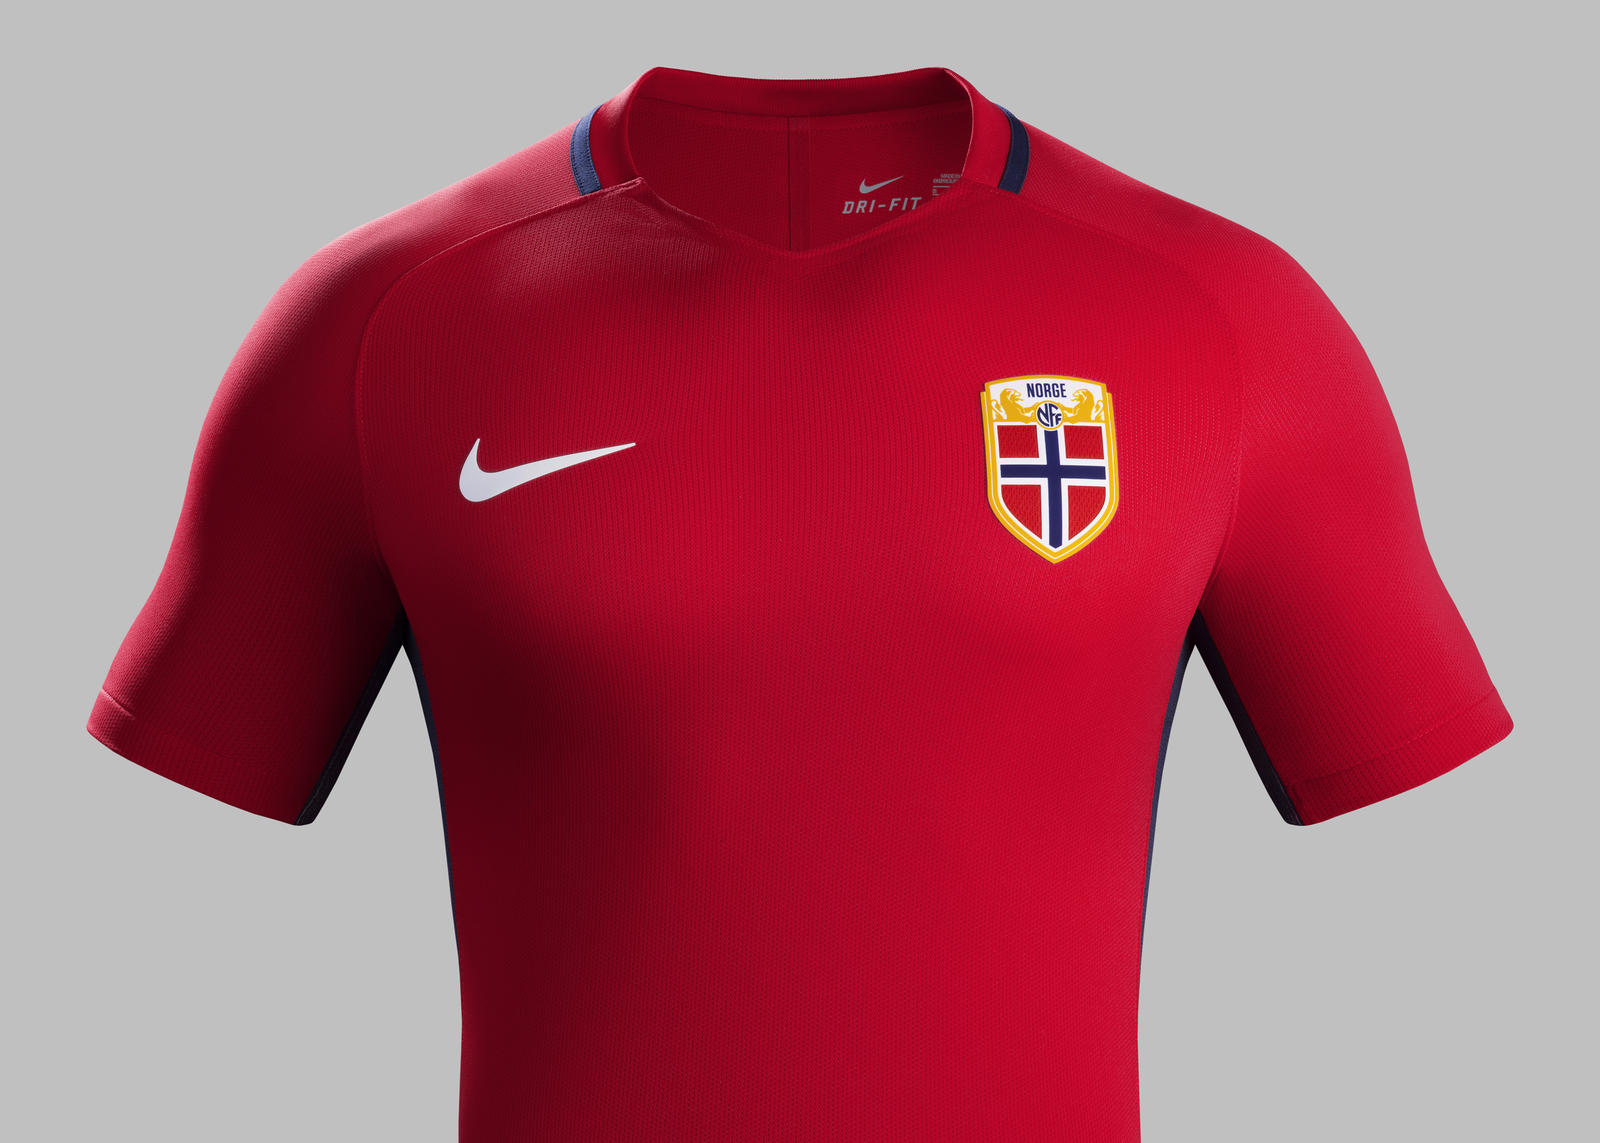 finest selection 23830 2fe3a Norway 2016 National Football Kits - Nike News